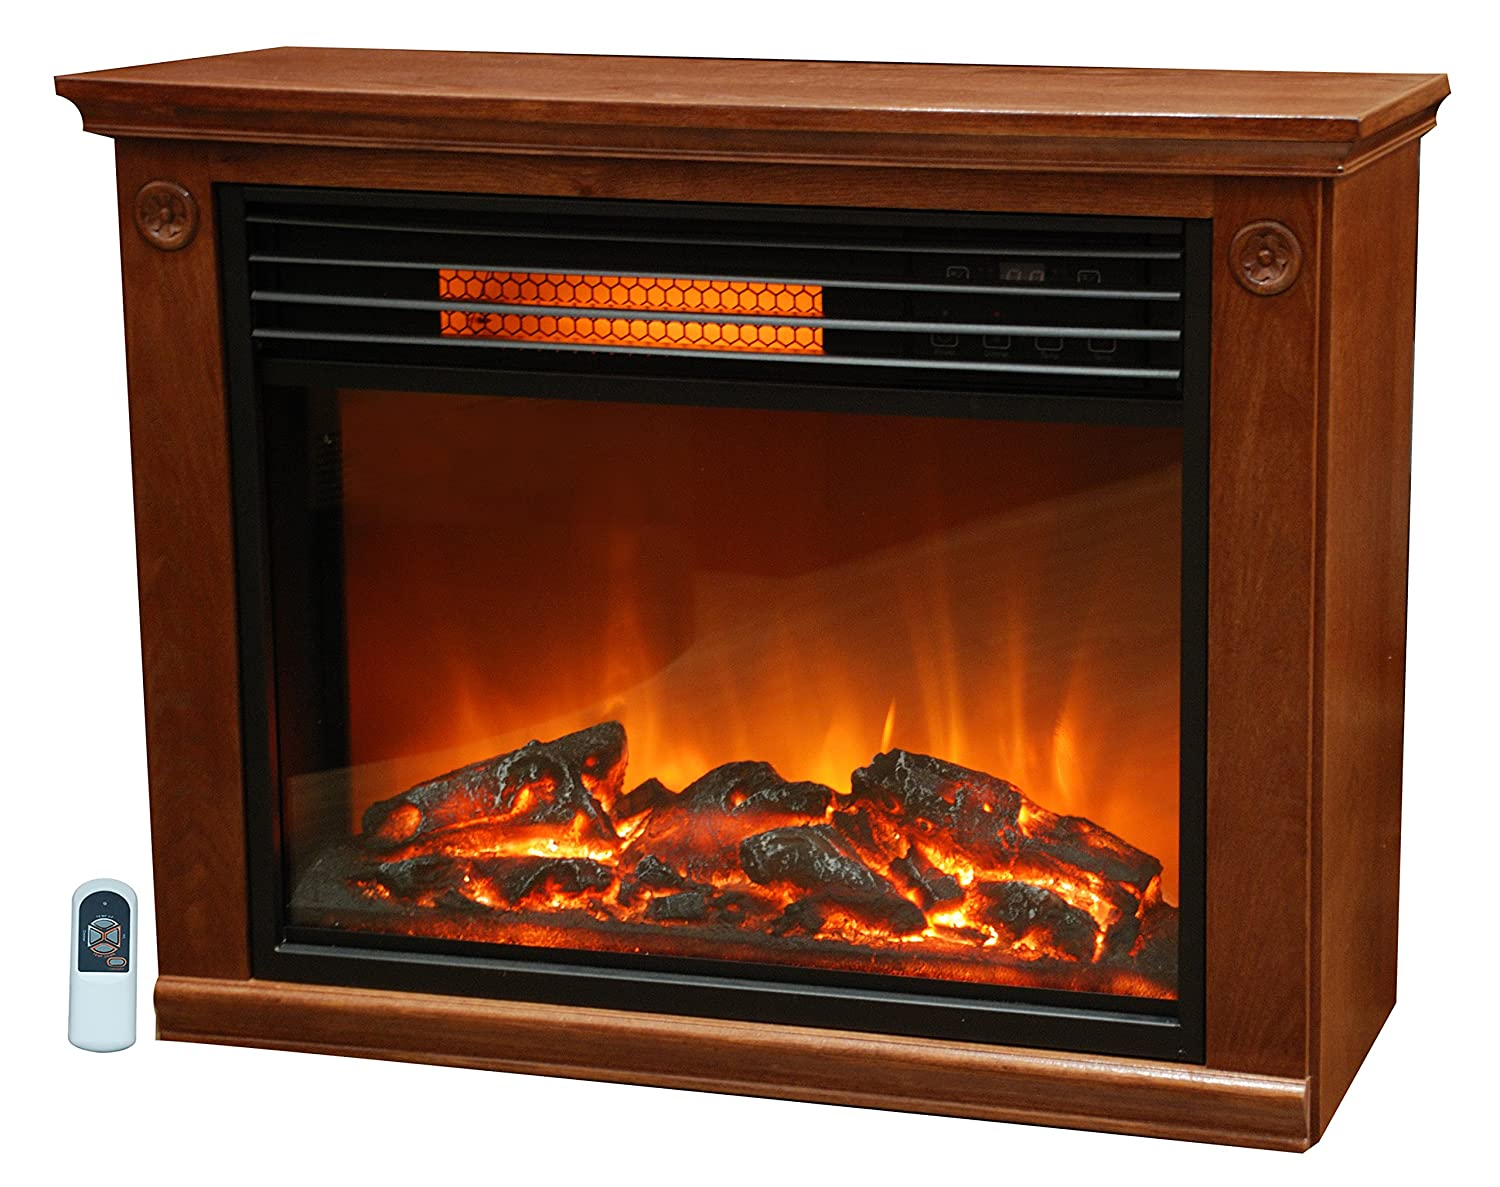 Quartz Infrared Fireplace Heater in Burnished Oak